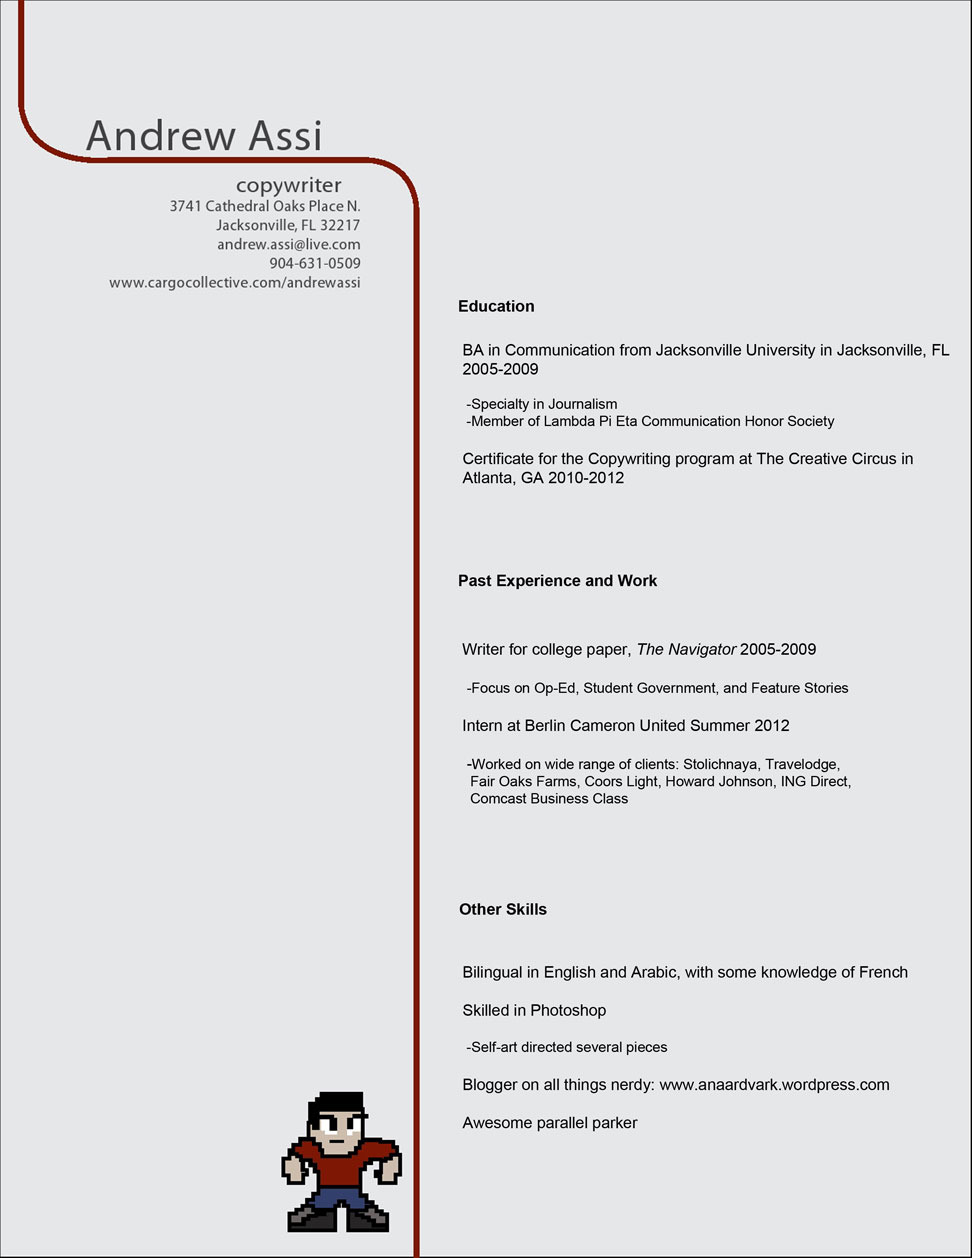 resume  portfolio download - andrew a  assi